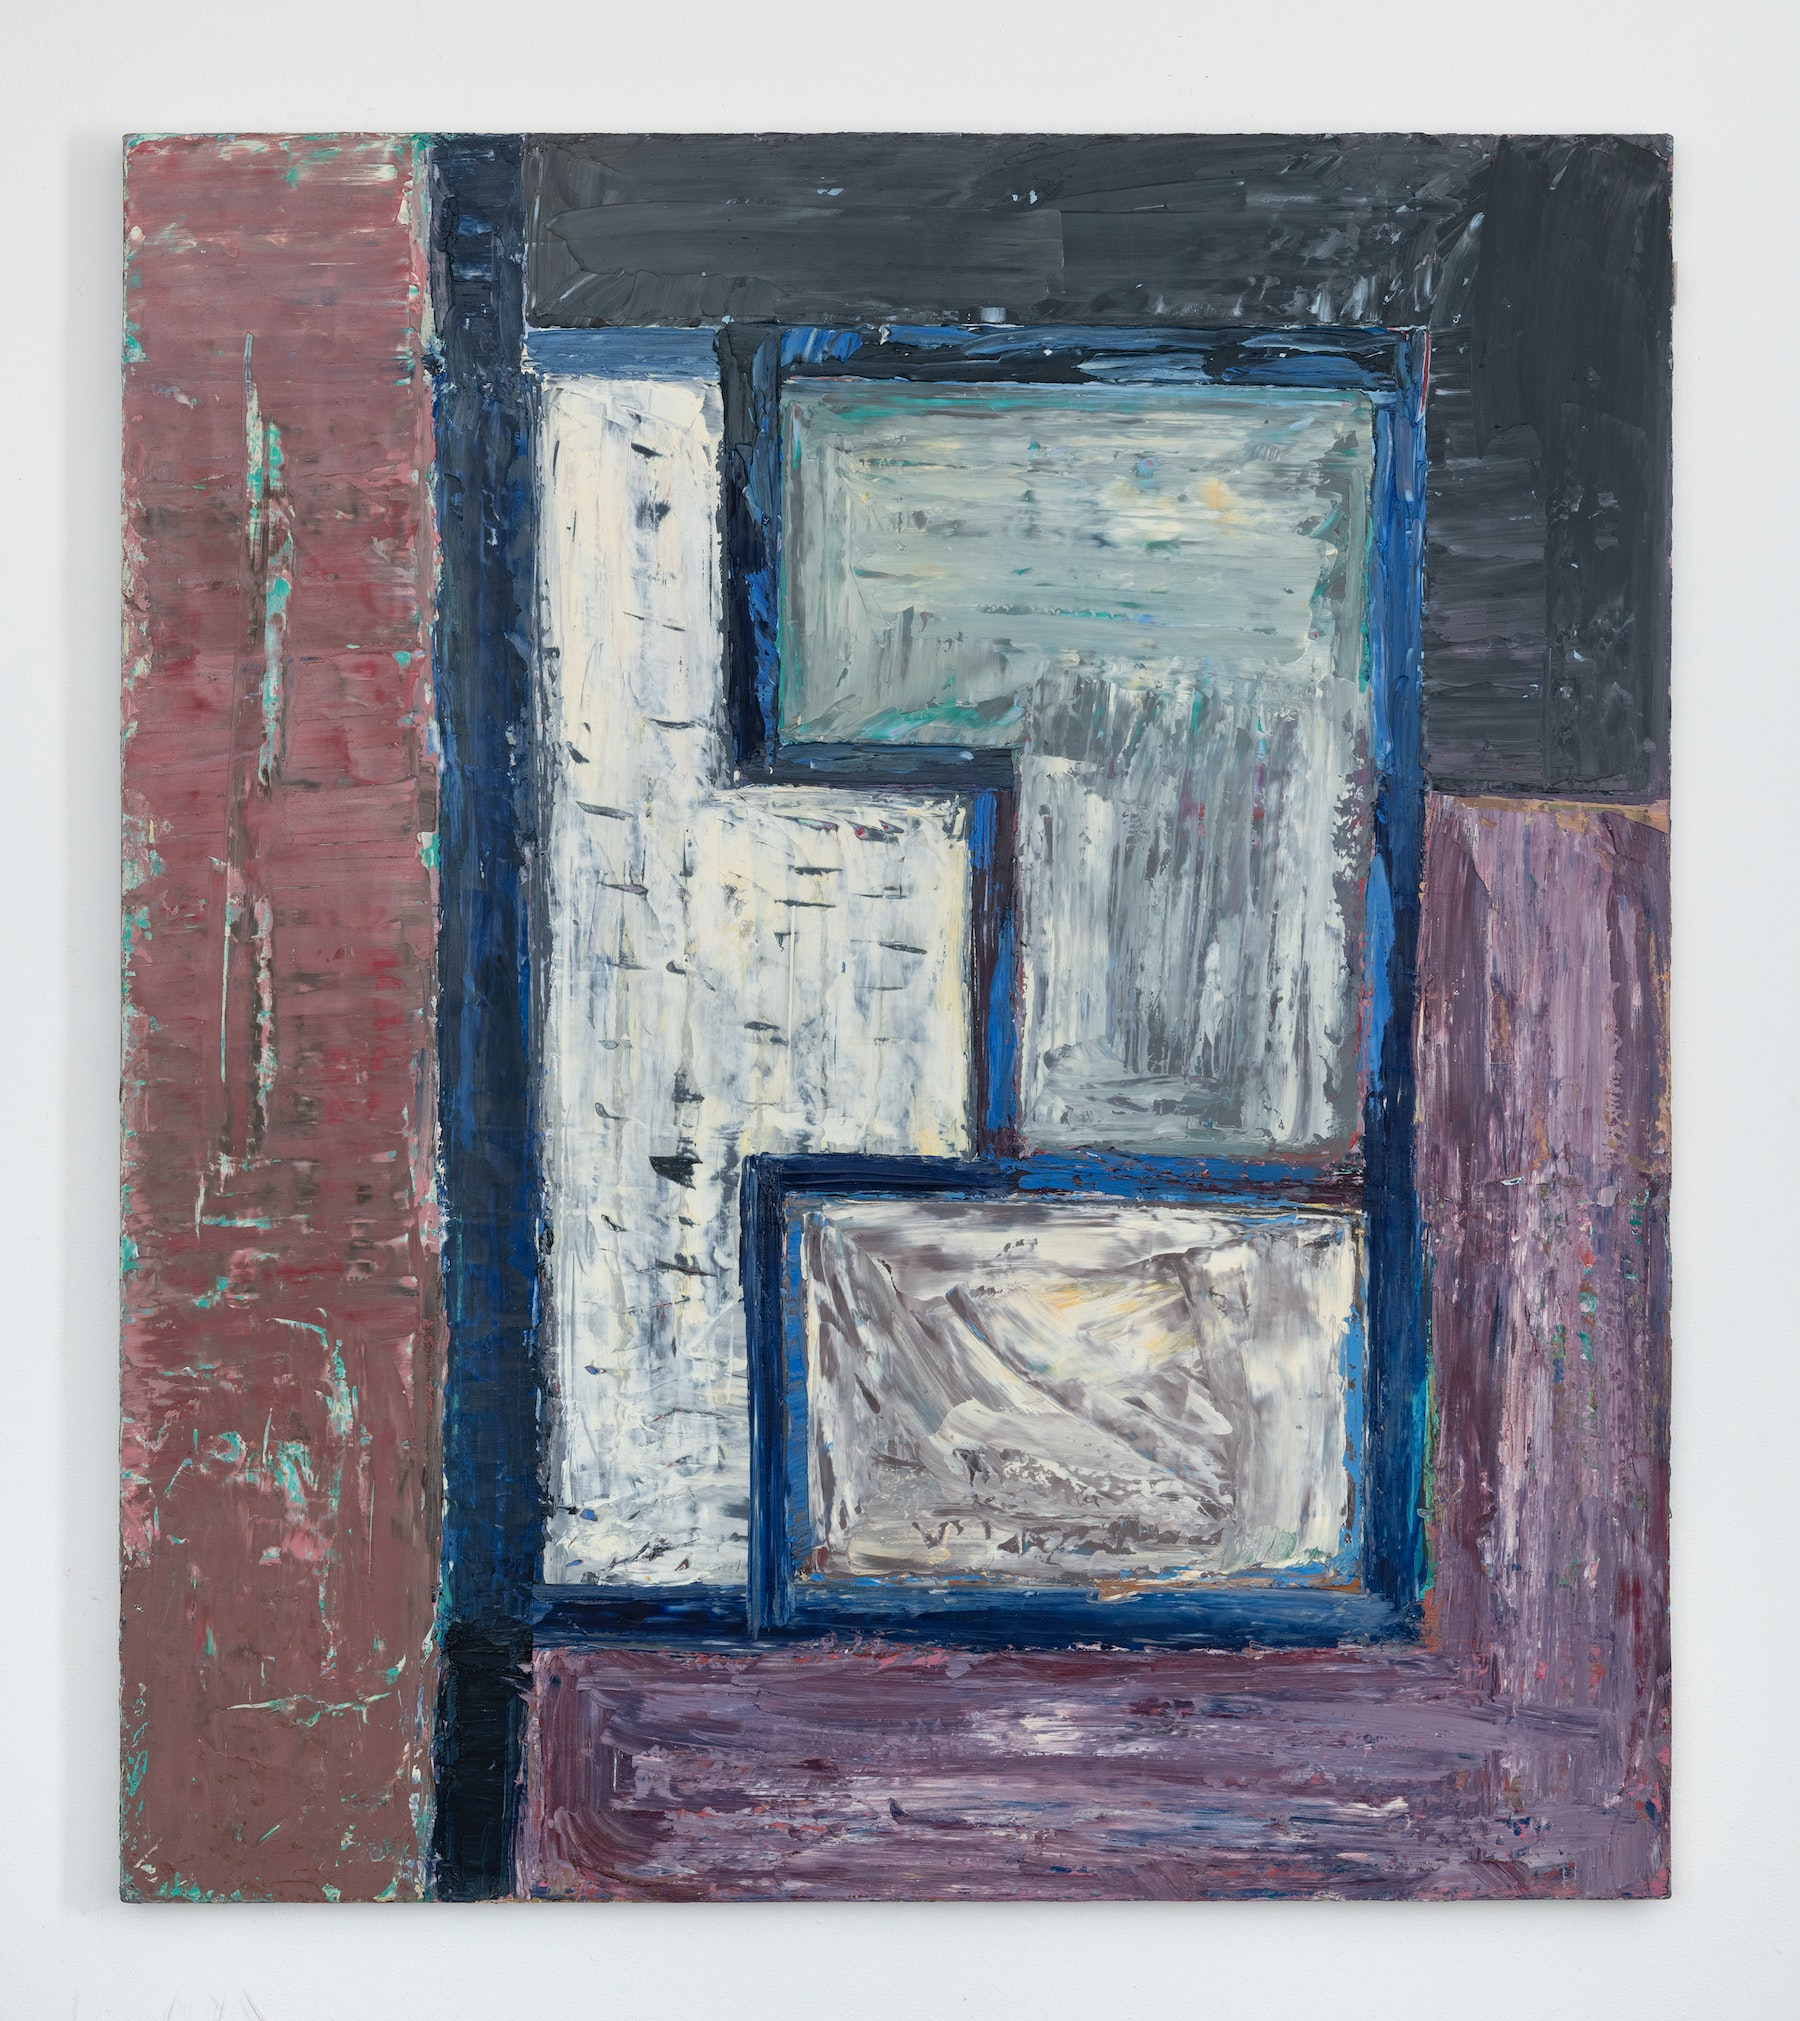 """Louise Fishman """"NEIGHBOR ROSICKY,"""" 1978 Oil on linen 48 x 41"""" [HxW] (121.92 x 104.14 cm) Inventory #FIS168 Courtesy of the artist and Vielmetter Los Angeles Photo credit: Adam Reich"""